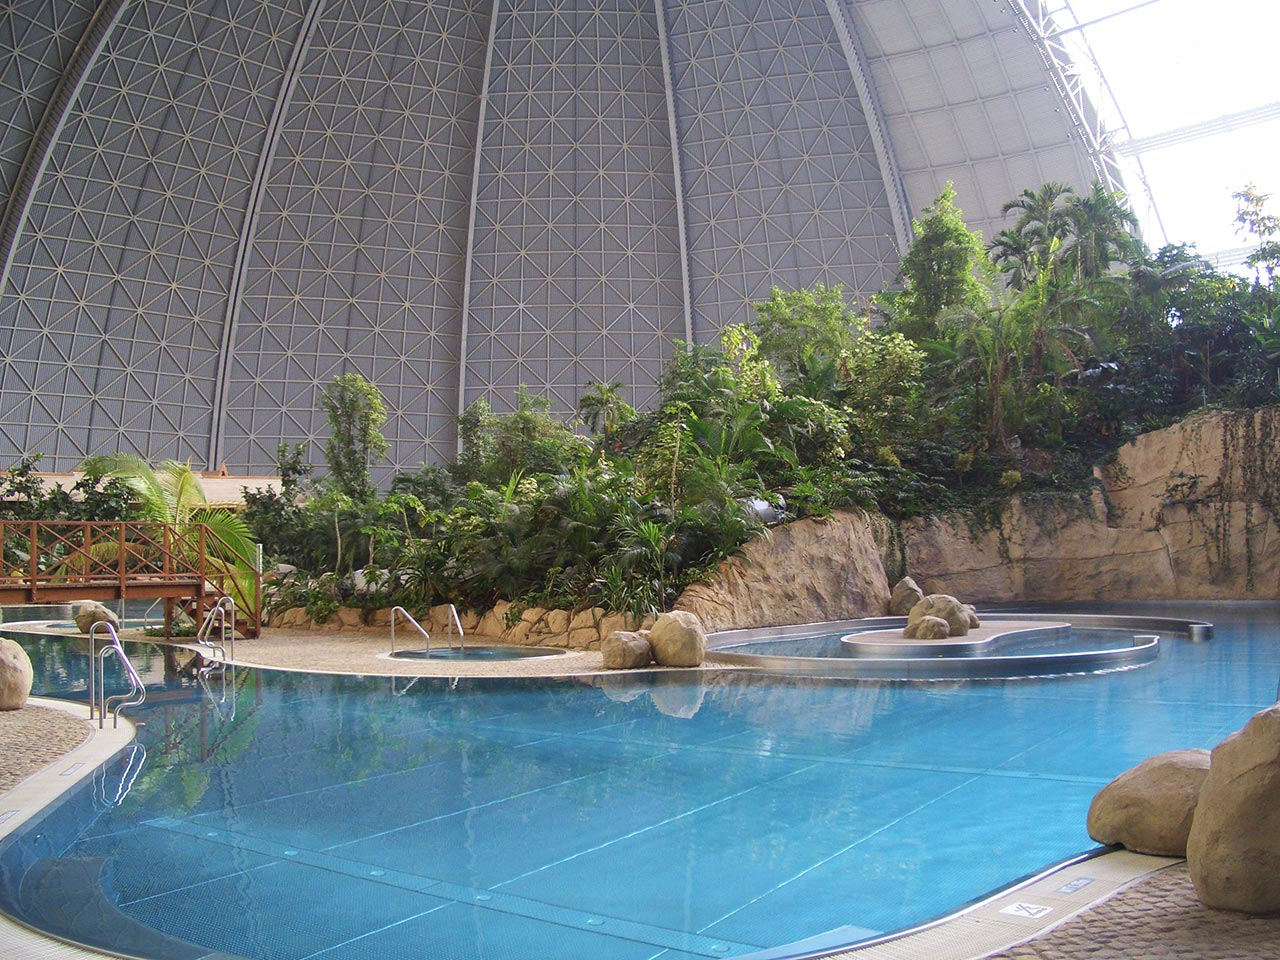 Tropical islands architekt uwe m ller potsdam for Quick up pool 120 hoch